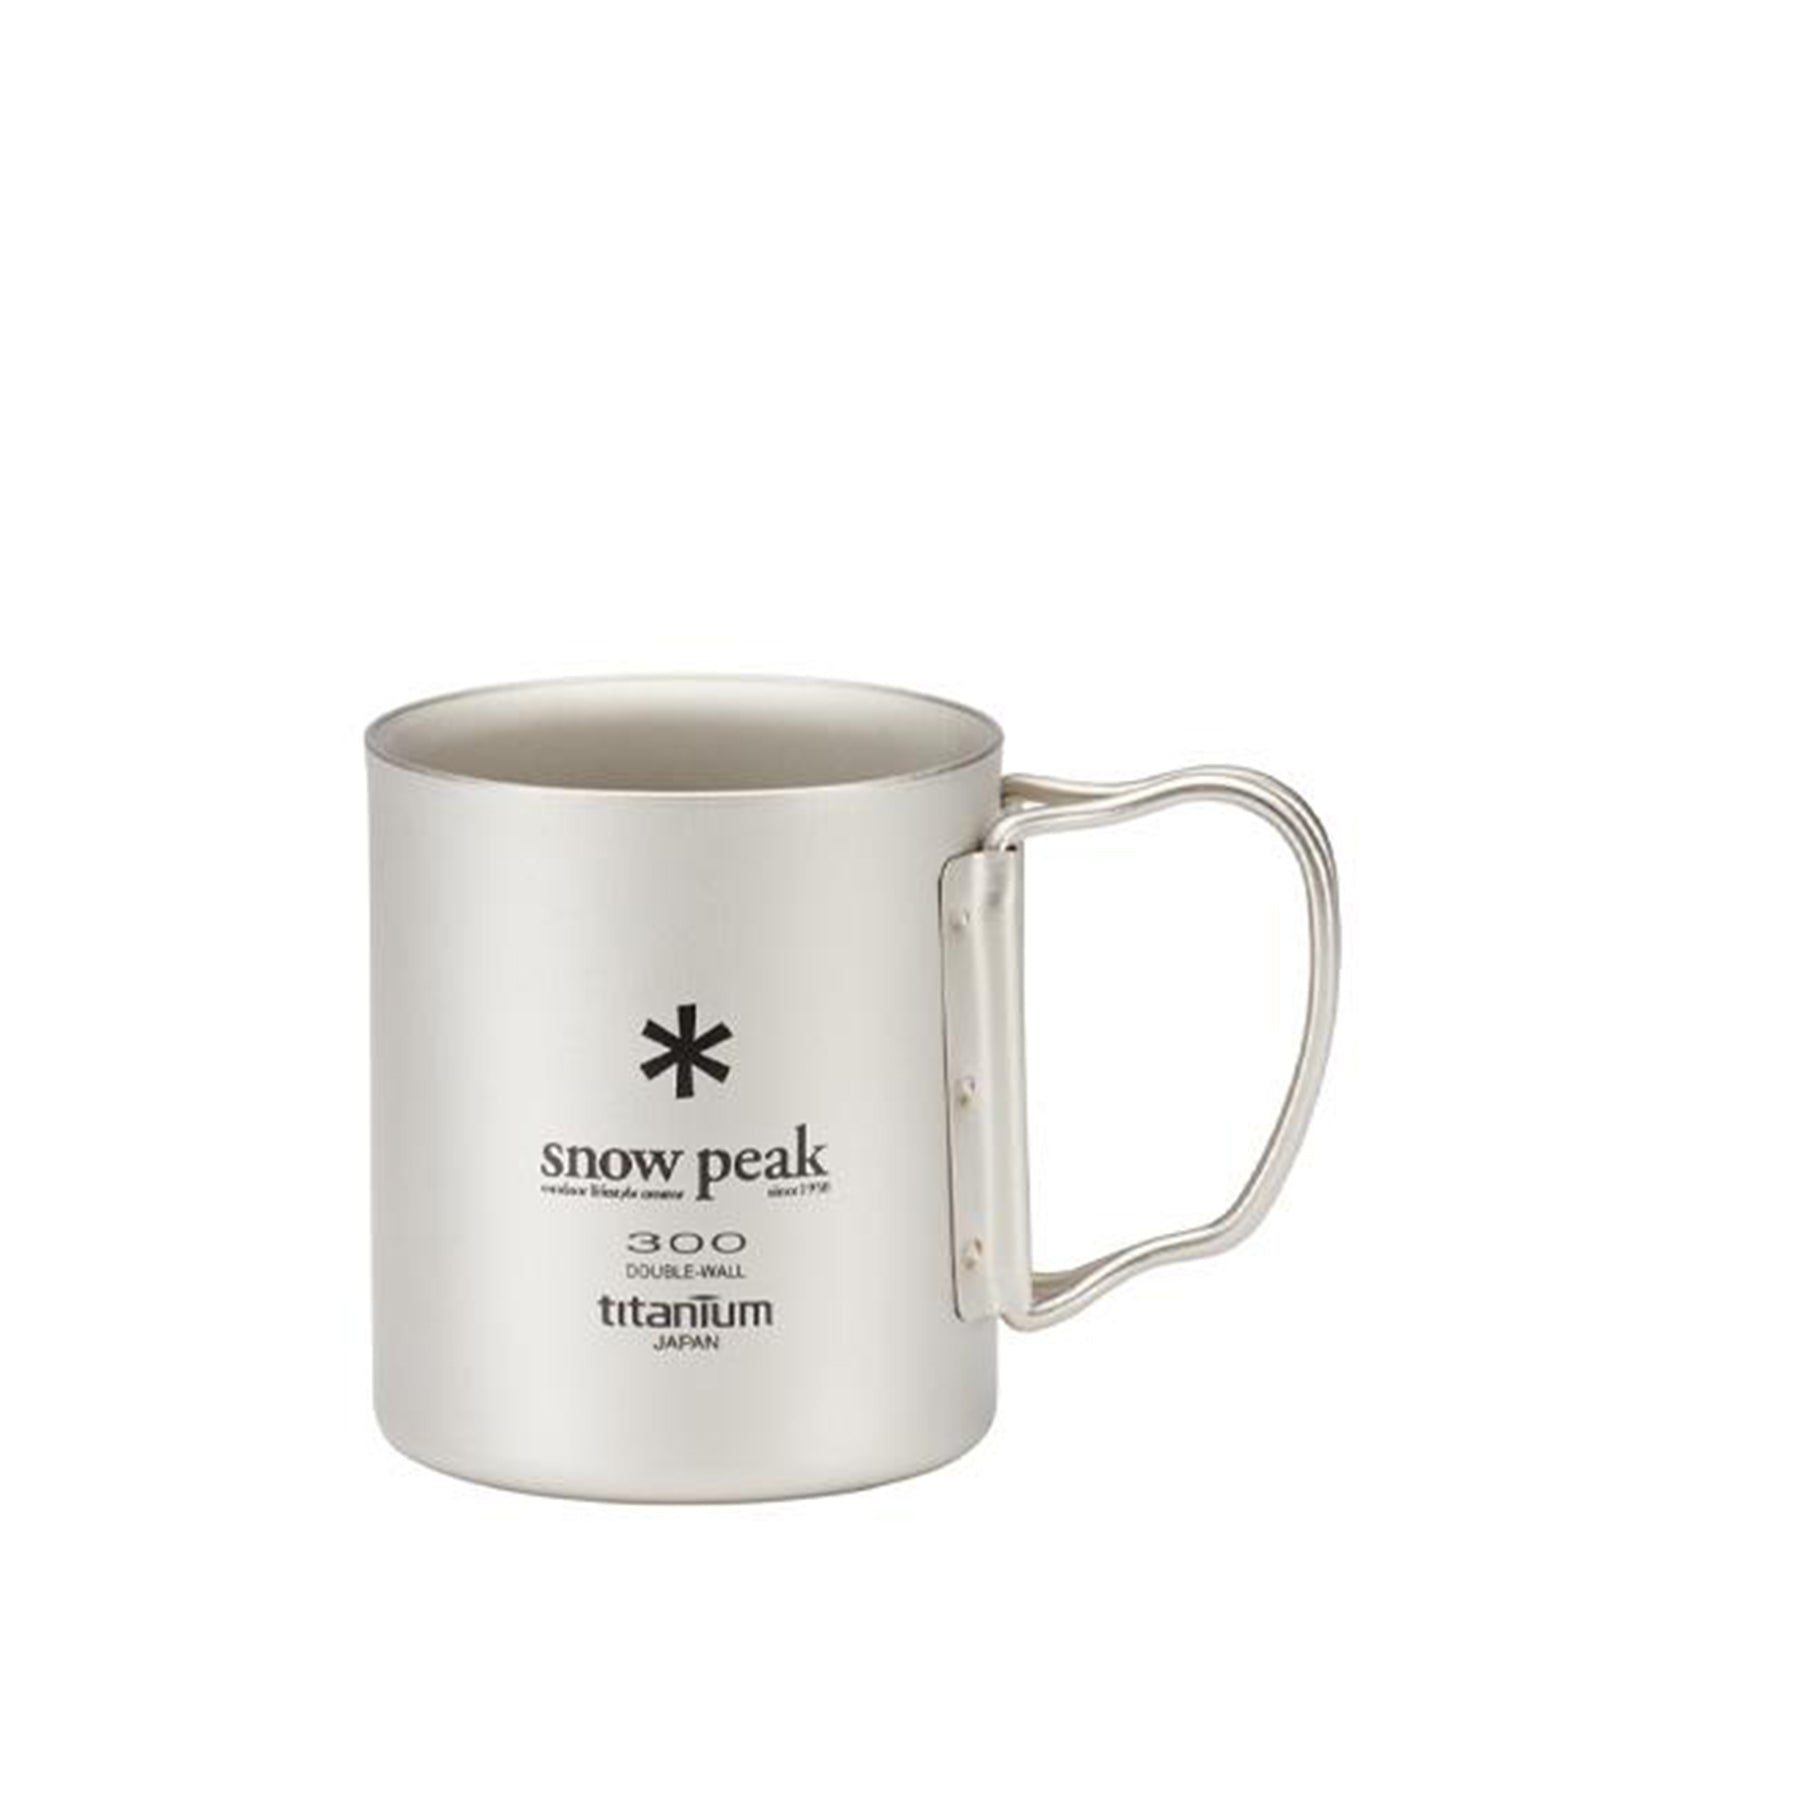 mug with handles out and logo facing us